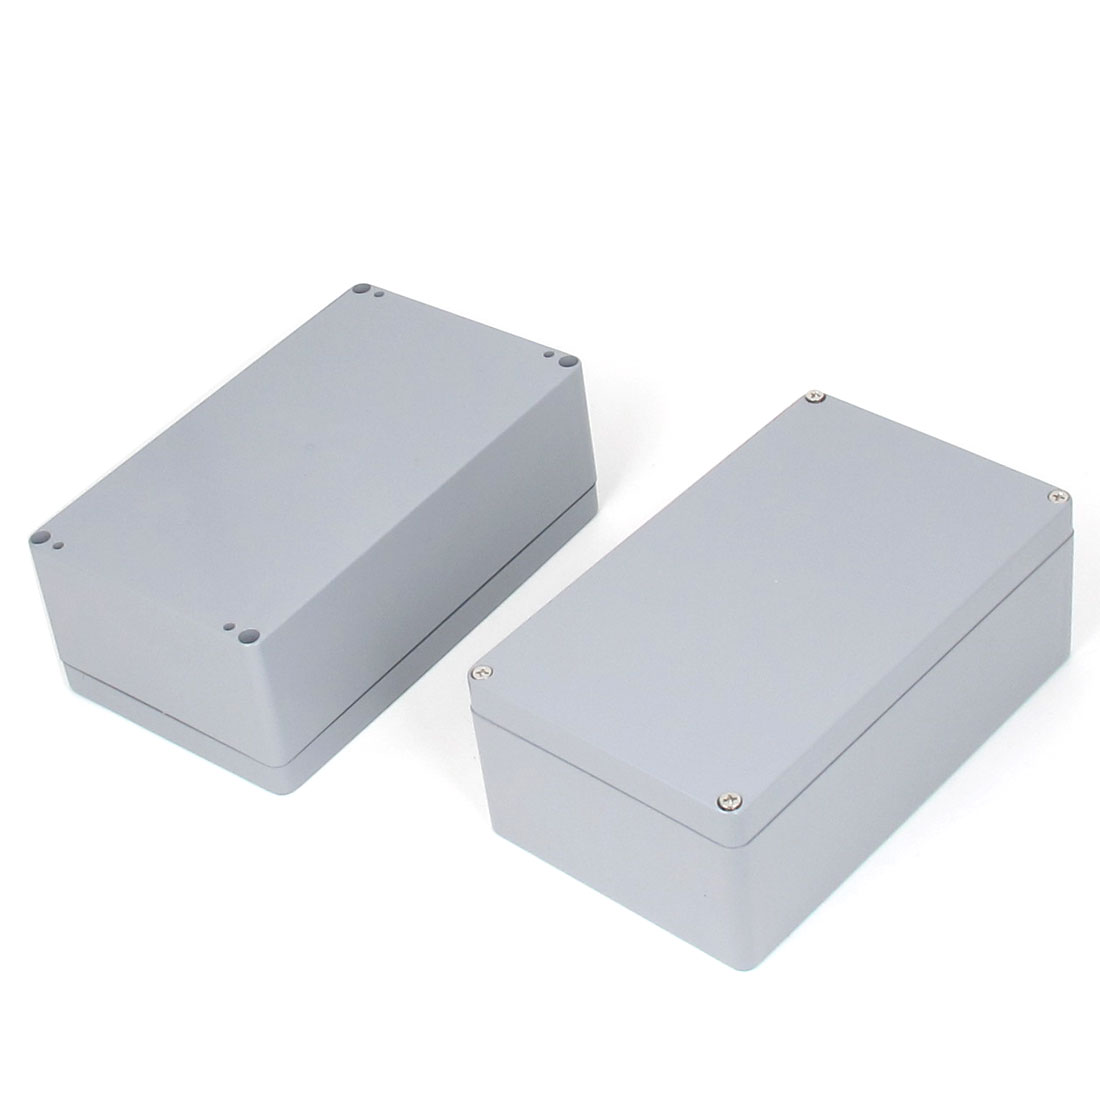 200mmx120mmx75mm Plastic Sealed Electric Junction Box Case Gray 2pcs